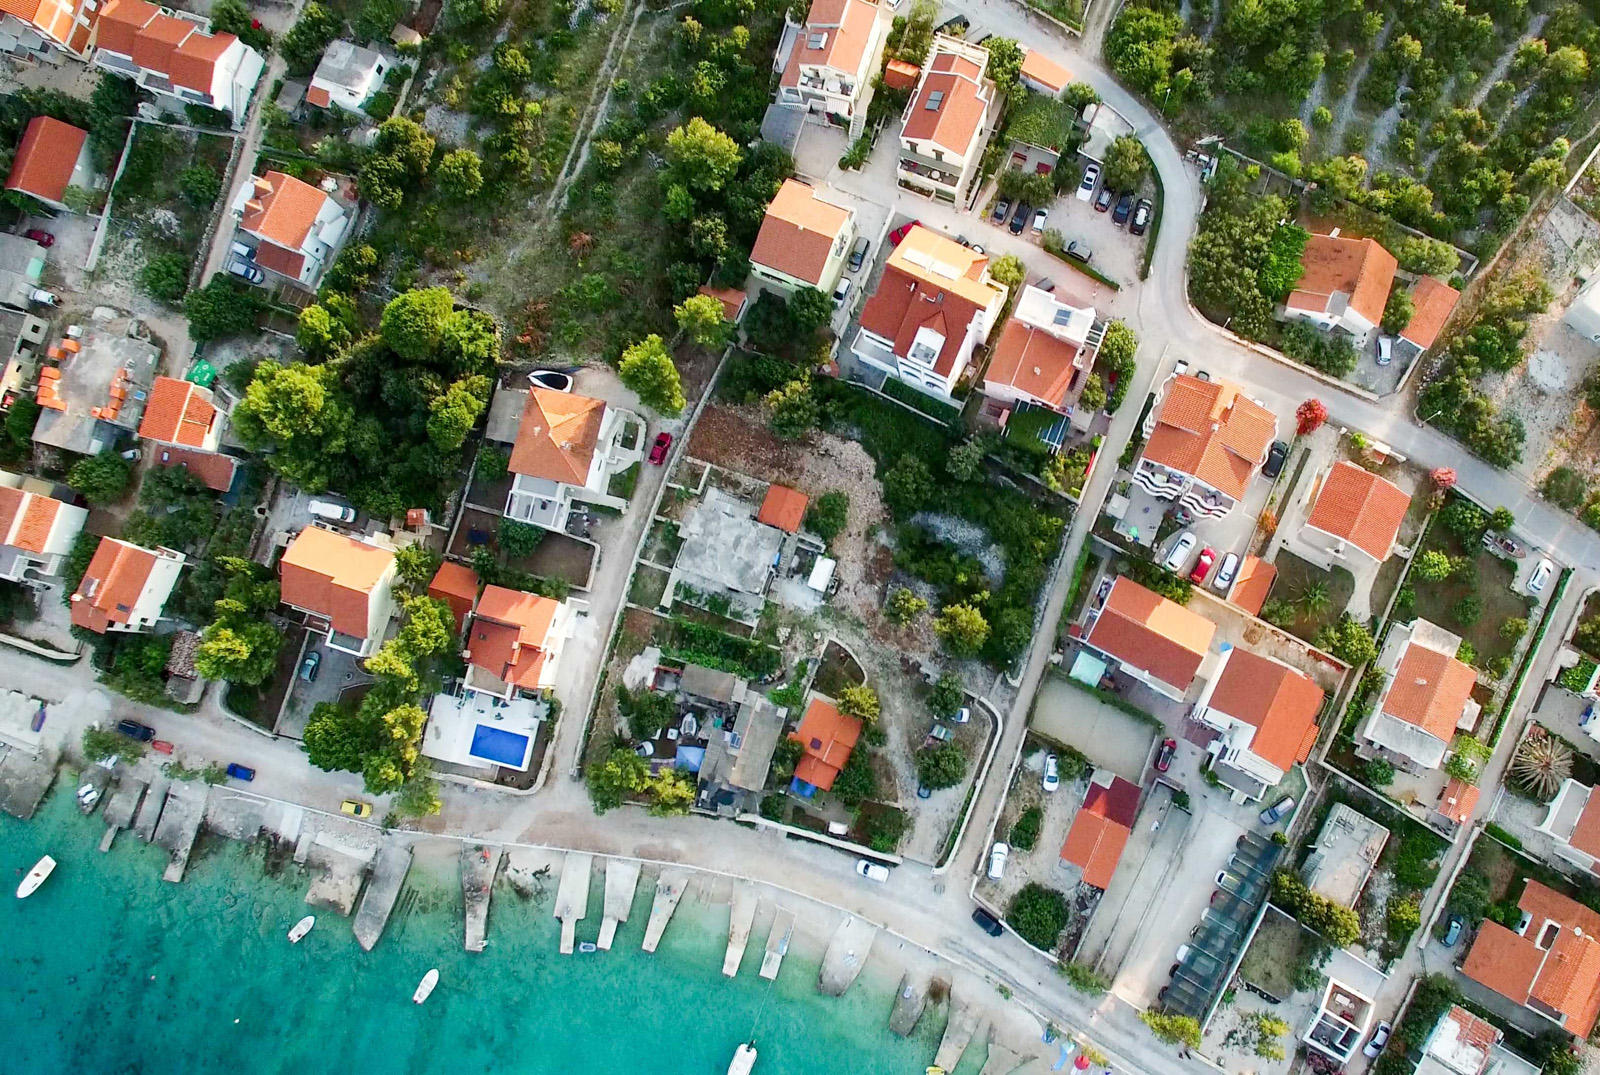 Overhead view of red roof houses near shore